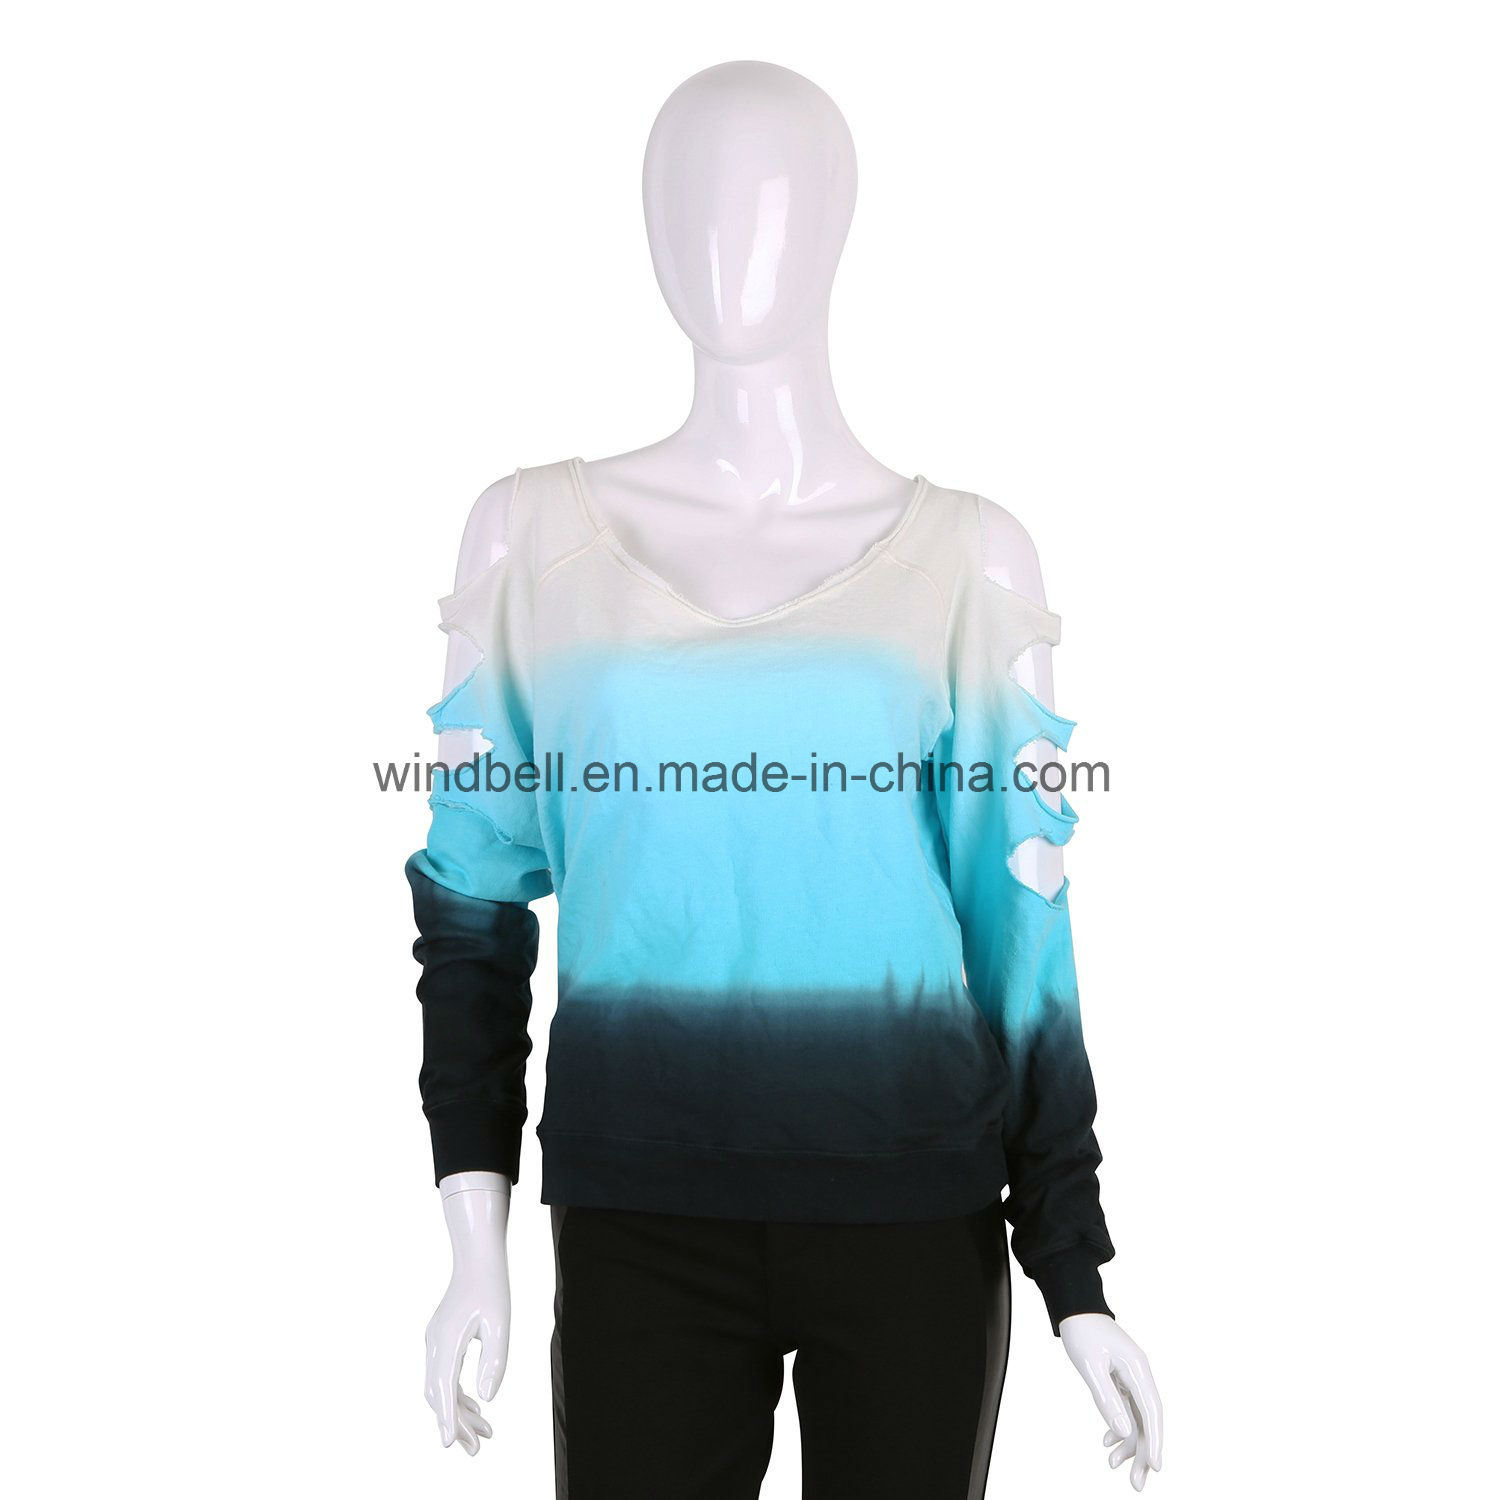 Fashionable Pullover for Women with Tie Dye